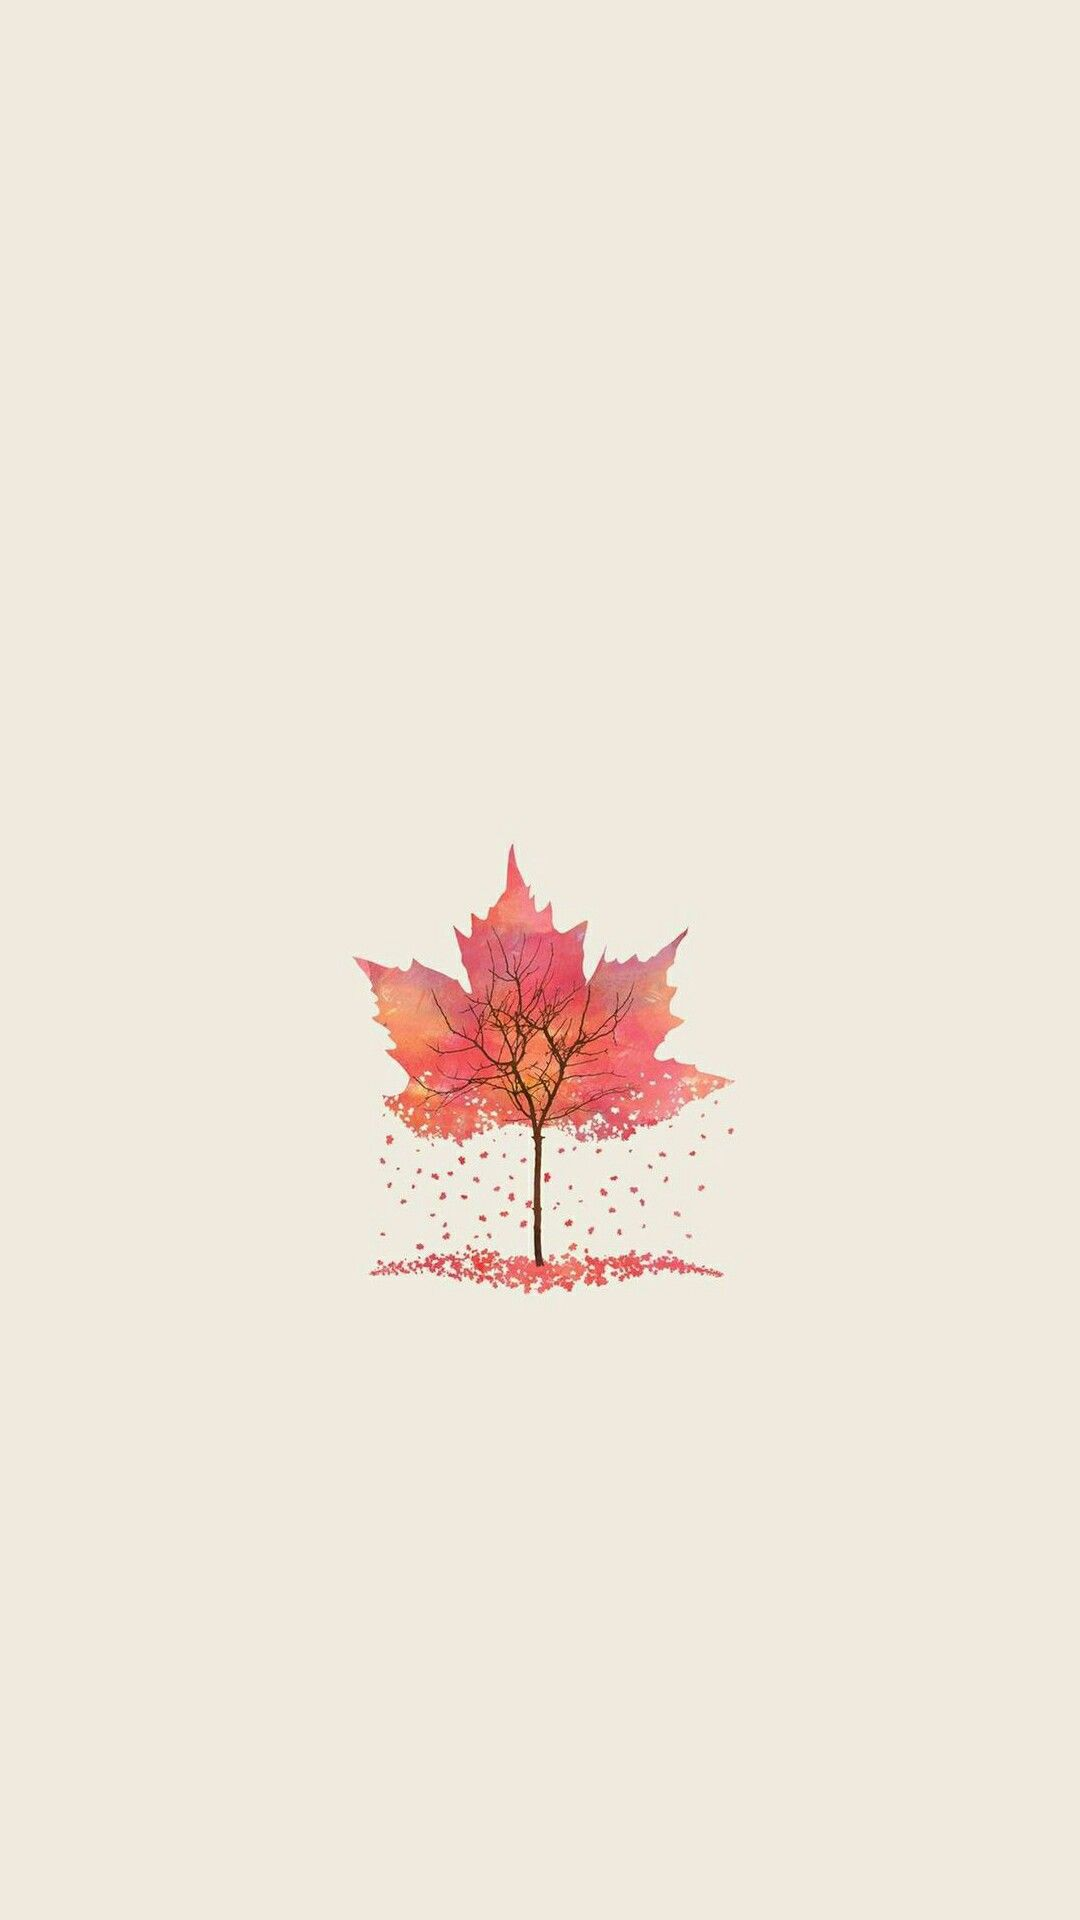 Cc Iphonewalls Net Leaf Illustration Beautiful Nature Wallpaper Autumn Leaves Wallpaper